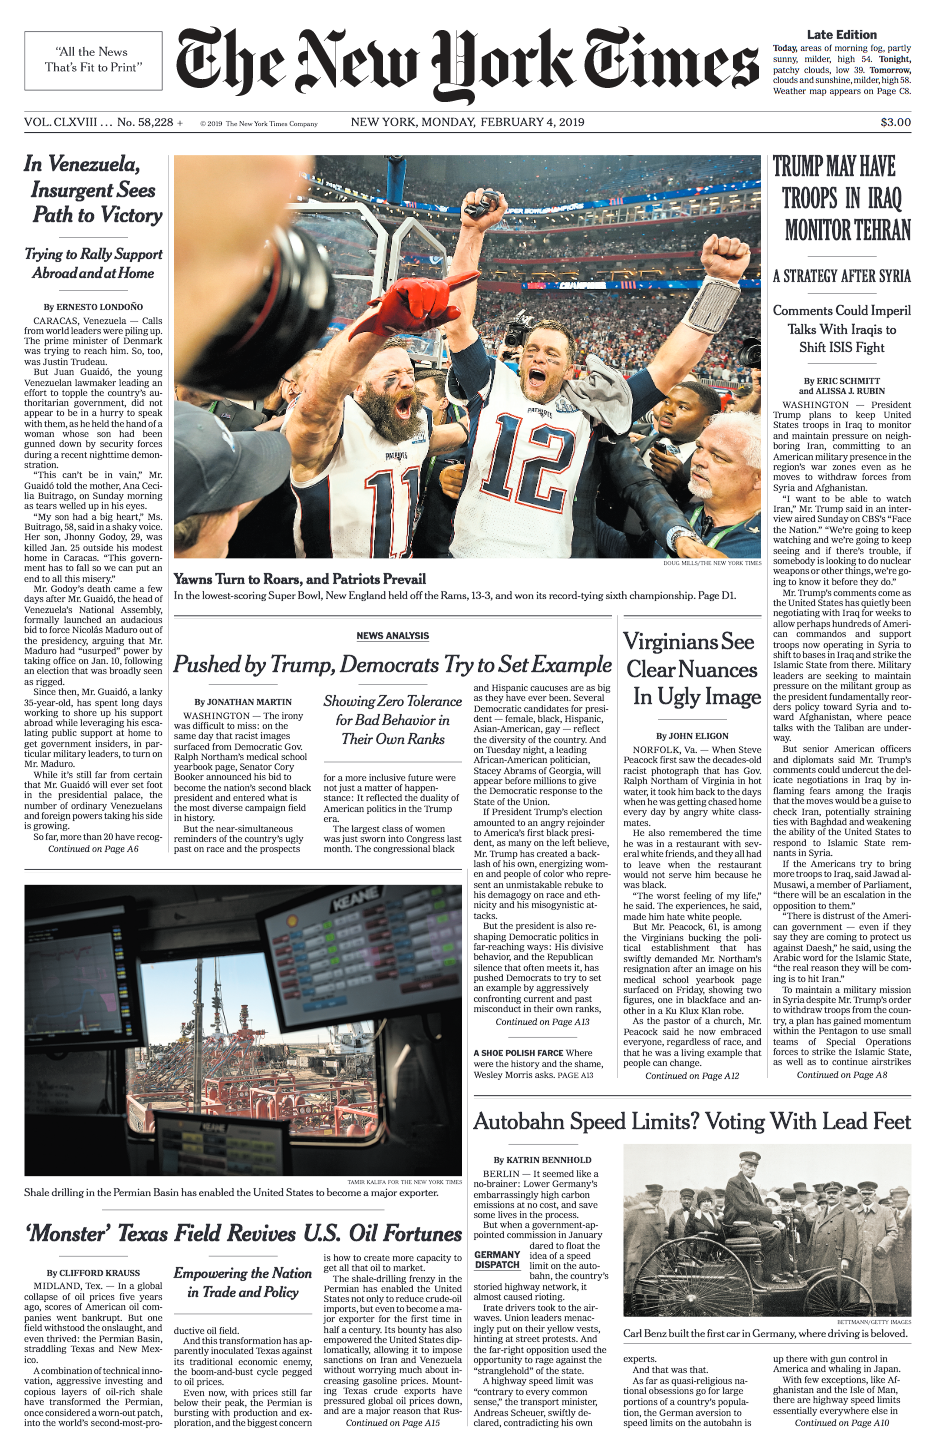 NYT_FrontPage_020419.png